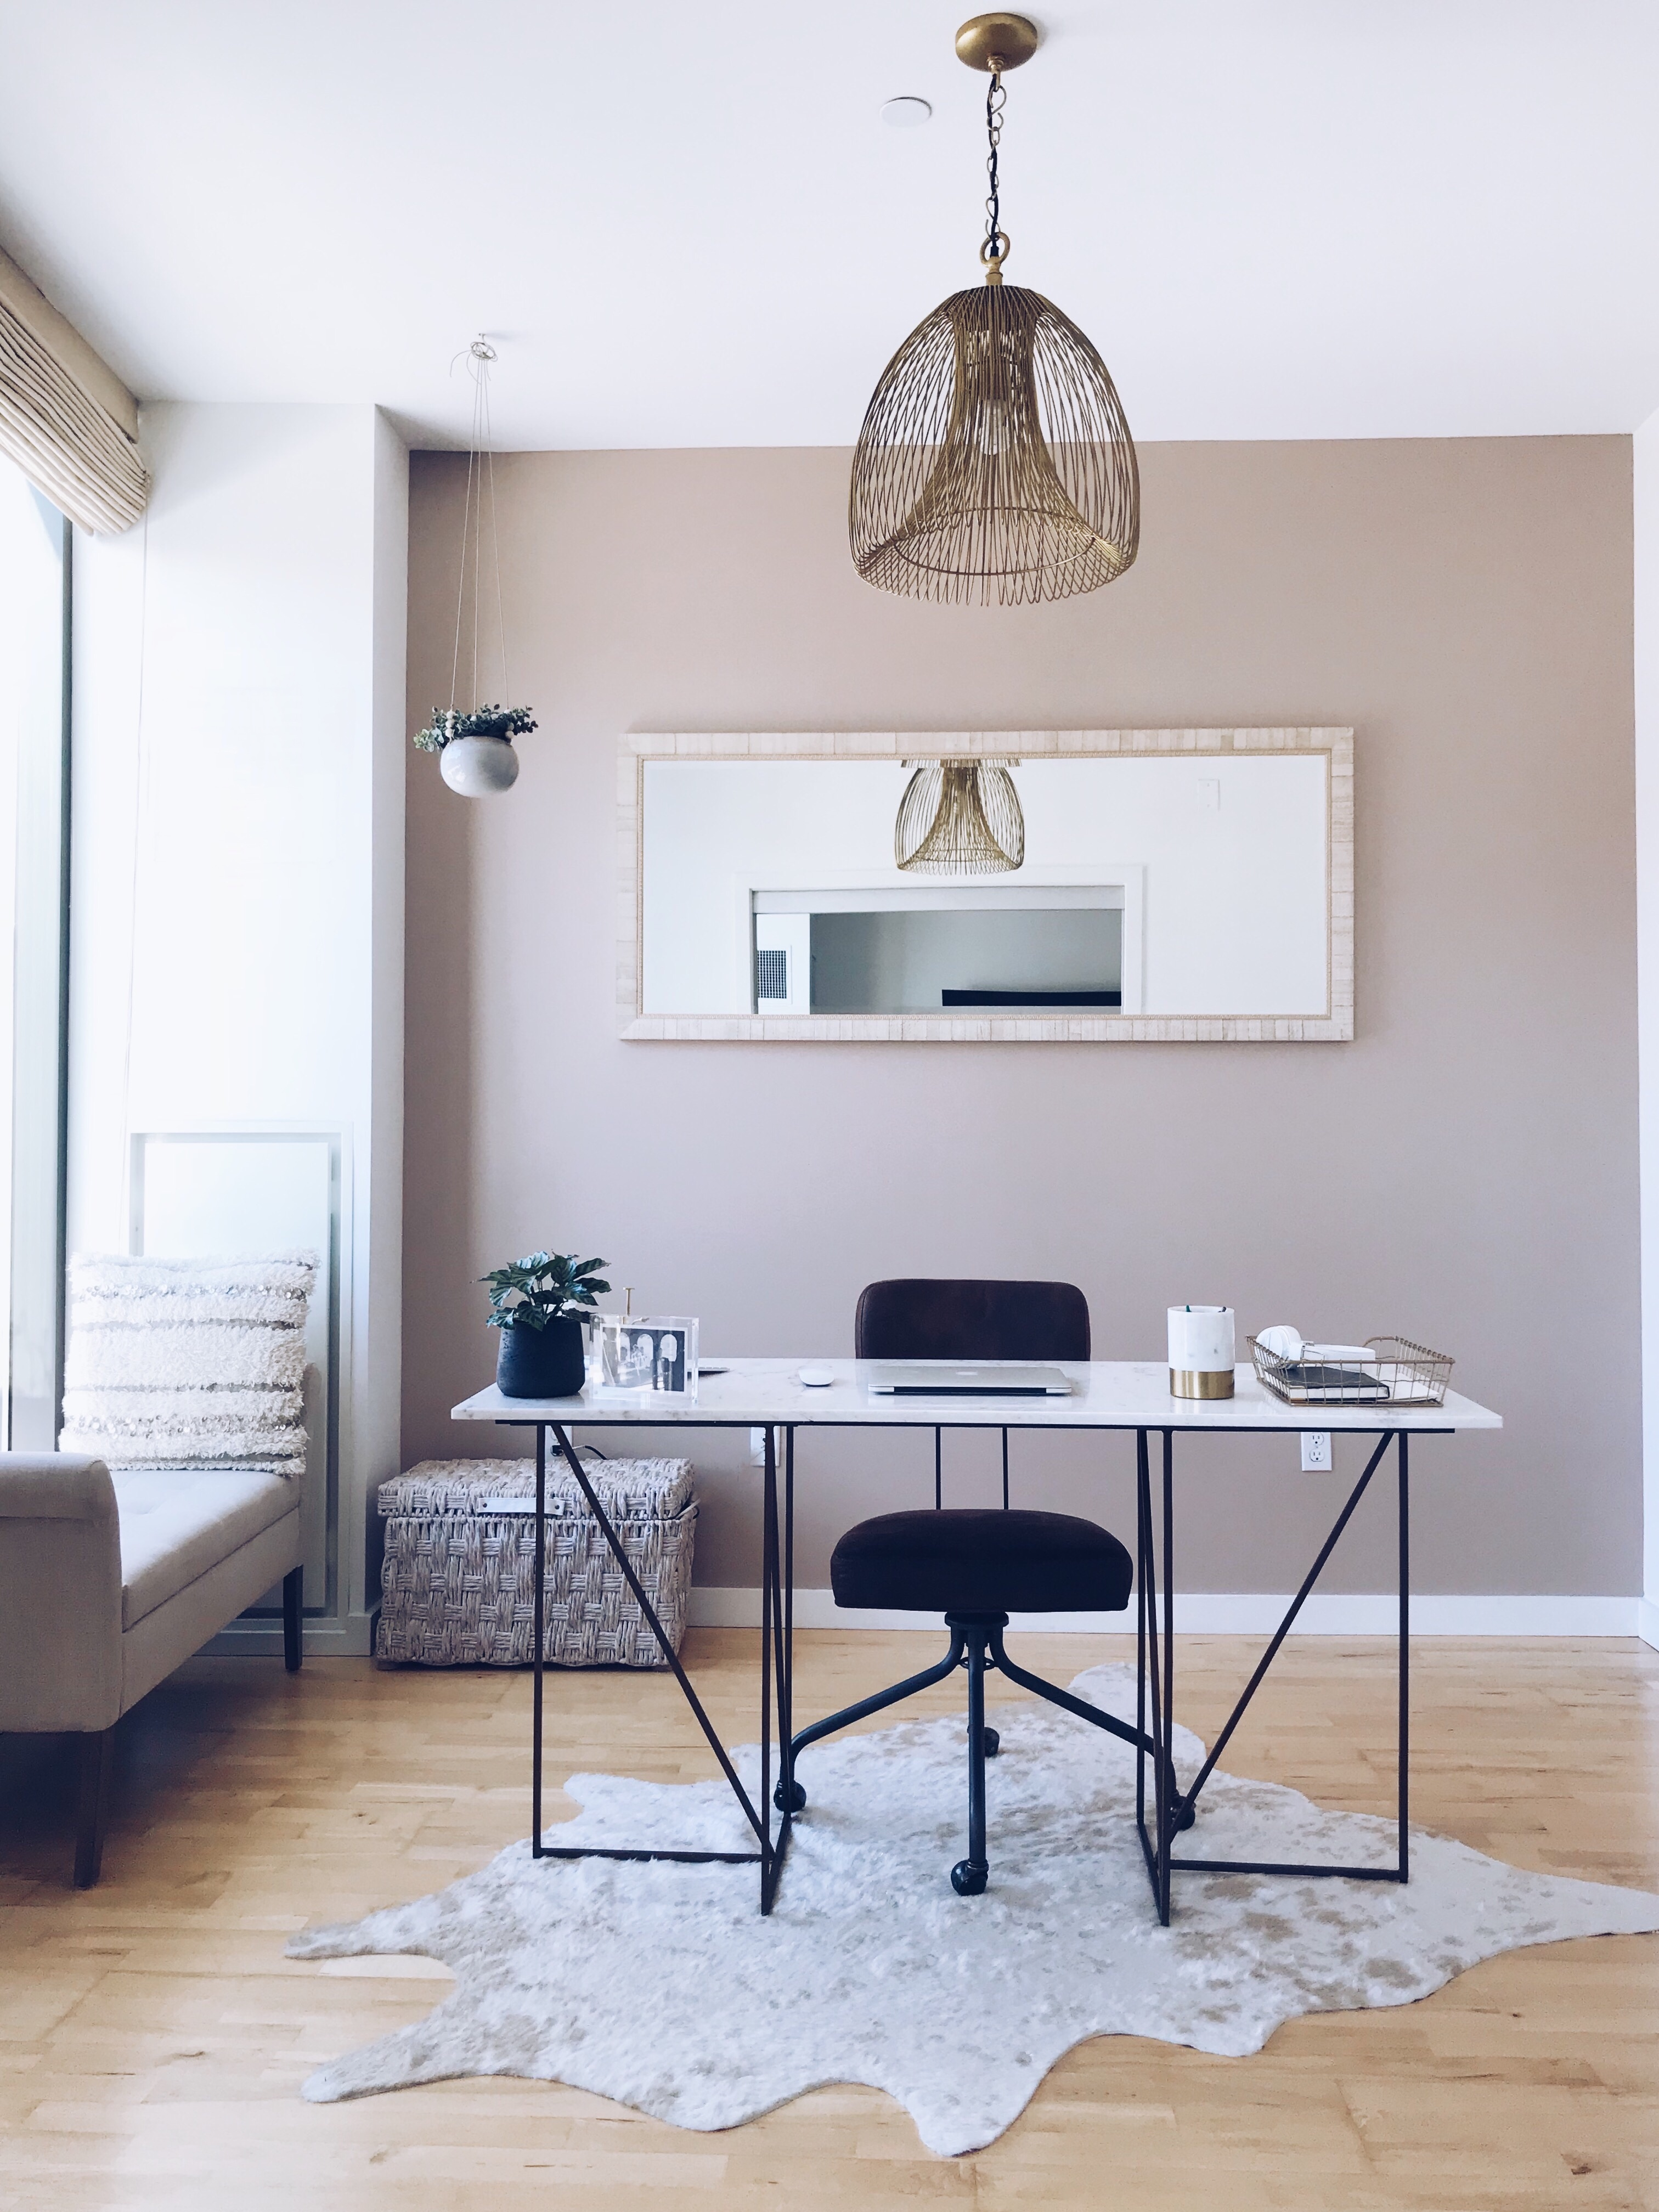 Boston Painting Service - Home and Office Painting Services - Paintzen